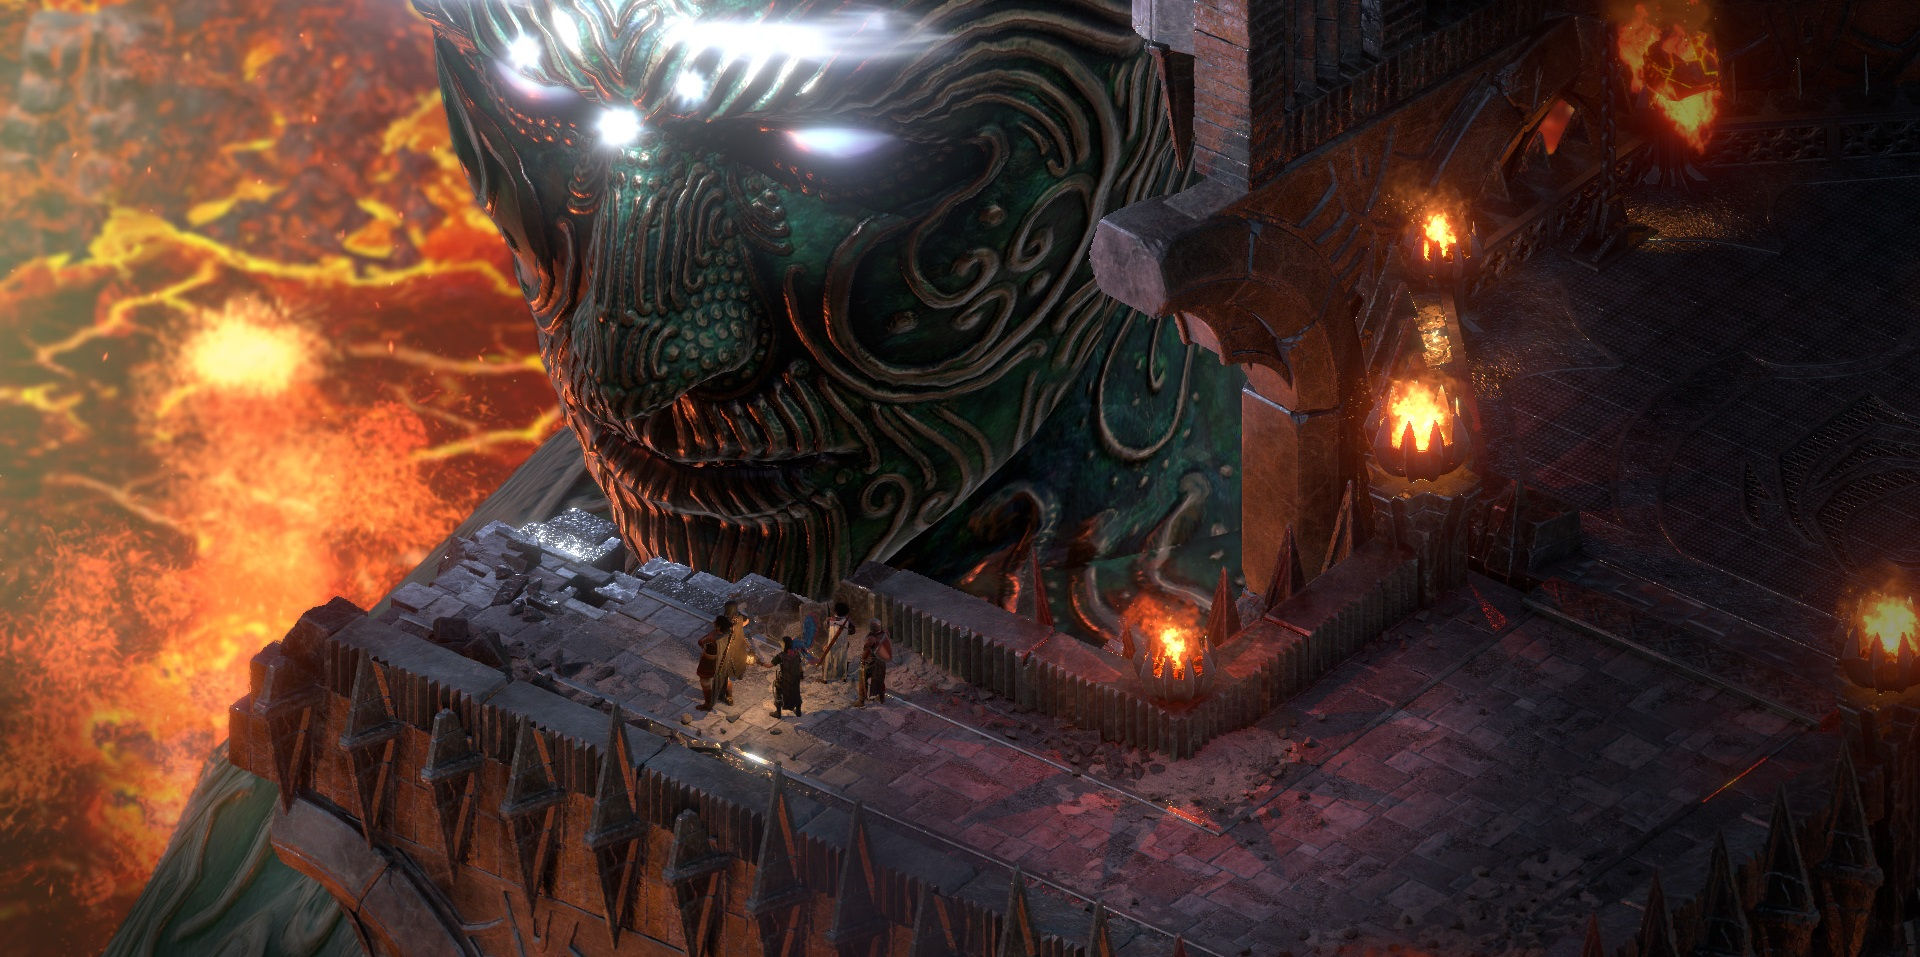 003811-Pillars-of-Eternity-2-Review-Shot